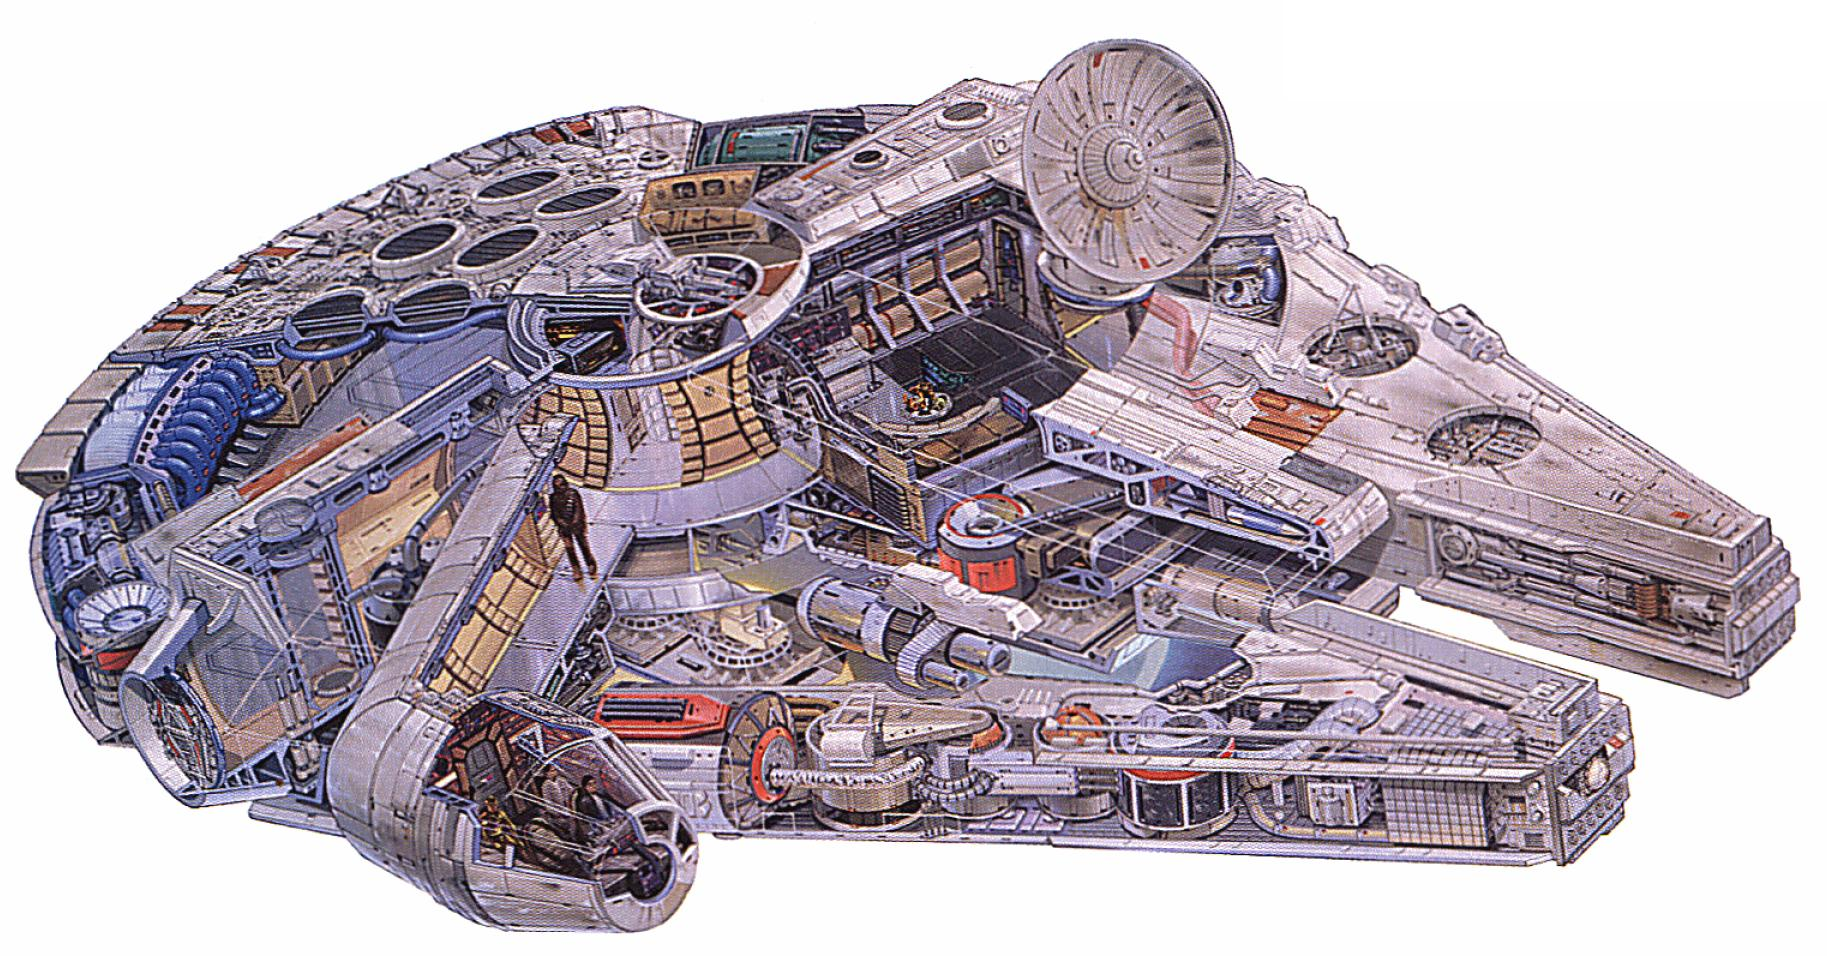 Star Wars Fans Building A Full Scale Replica Of The Millennium Falcon It 39 S Interesting